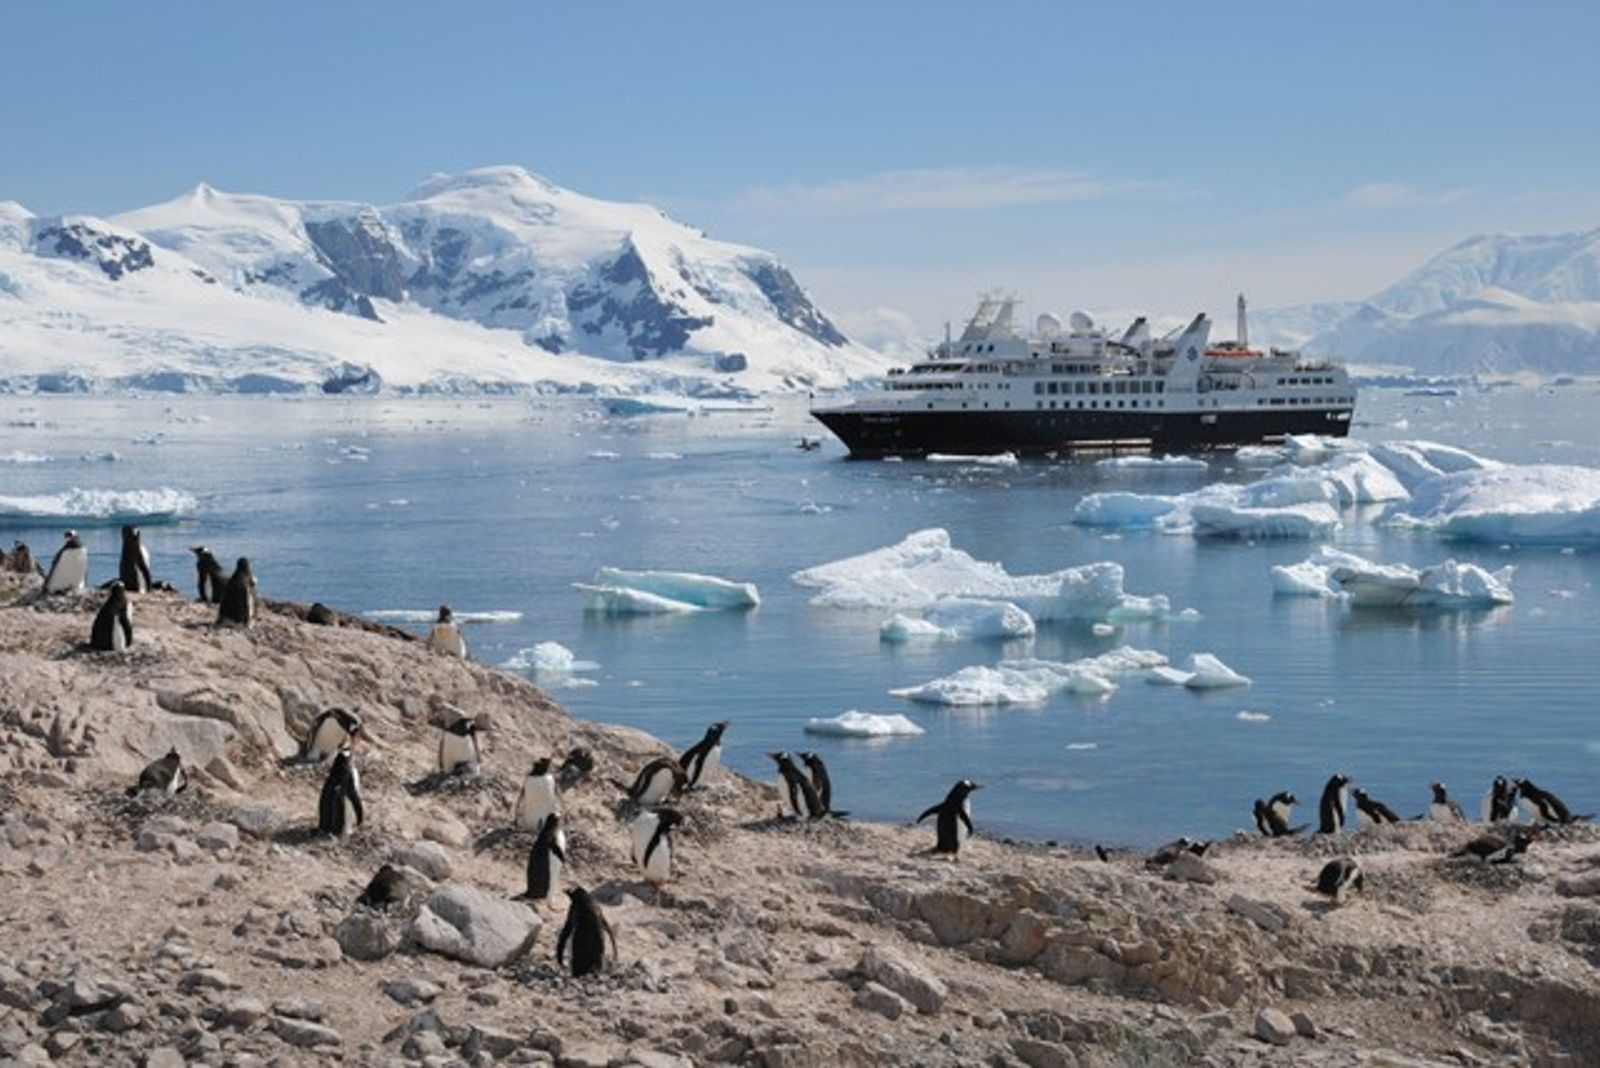 Find your ultimate Antarctica experience